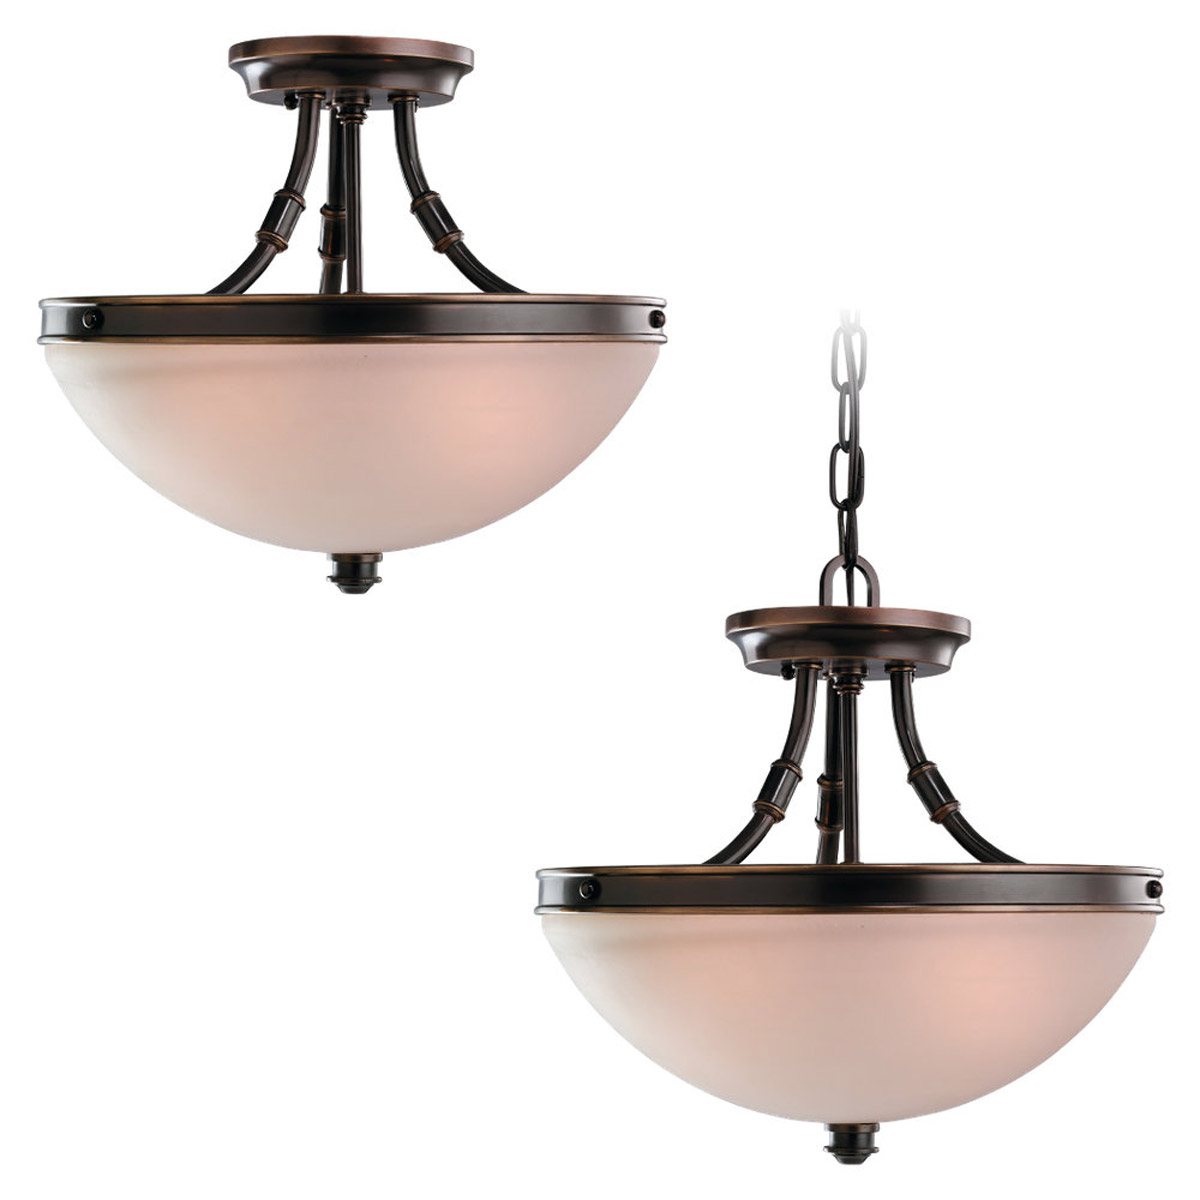 Sea Gull Lighting Warwick 2 Light Semi-Flush Mount in Vintage Bronze 77330-825